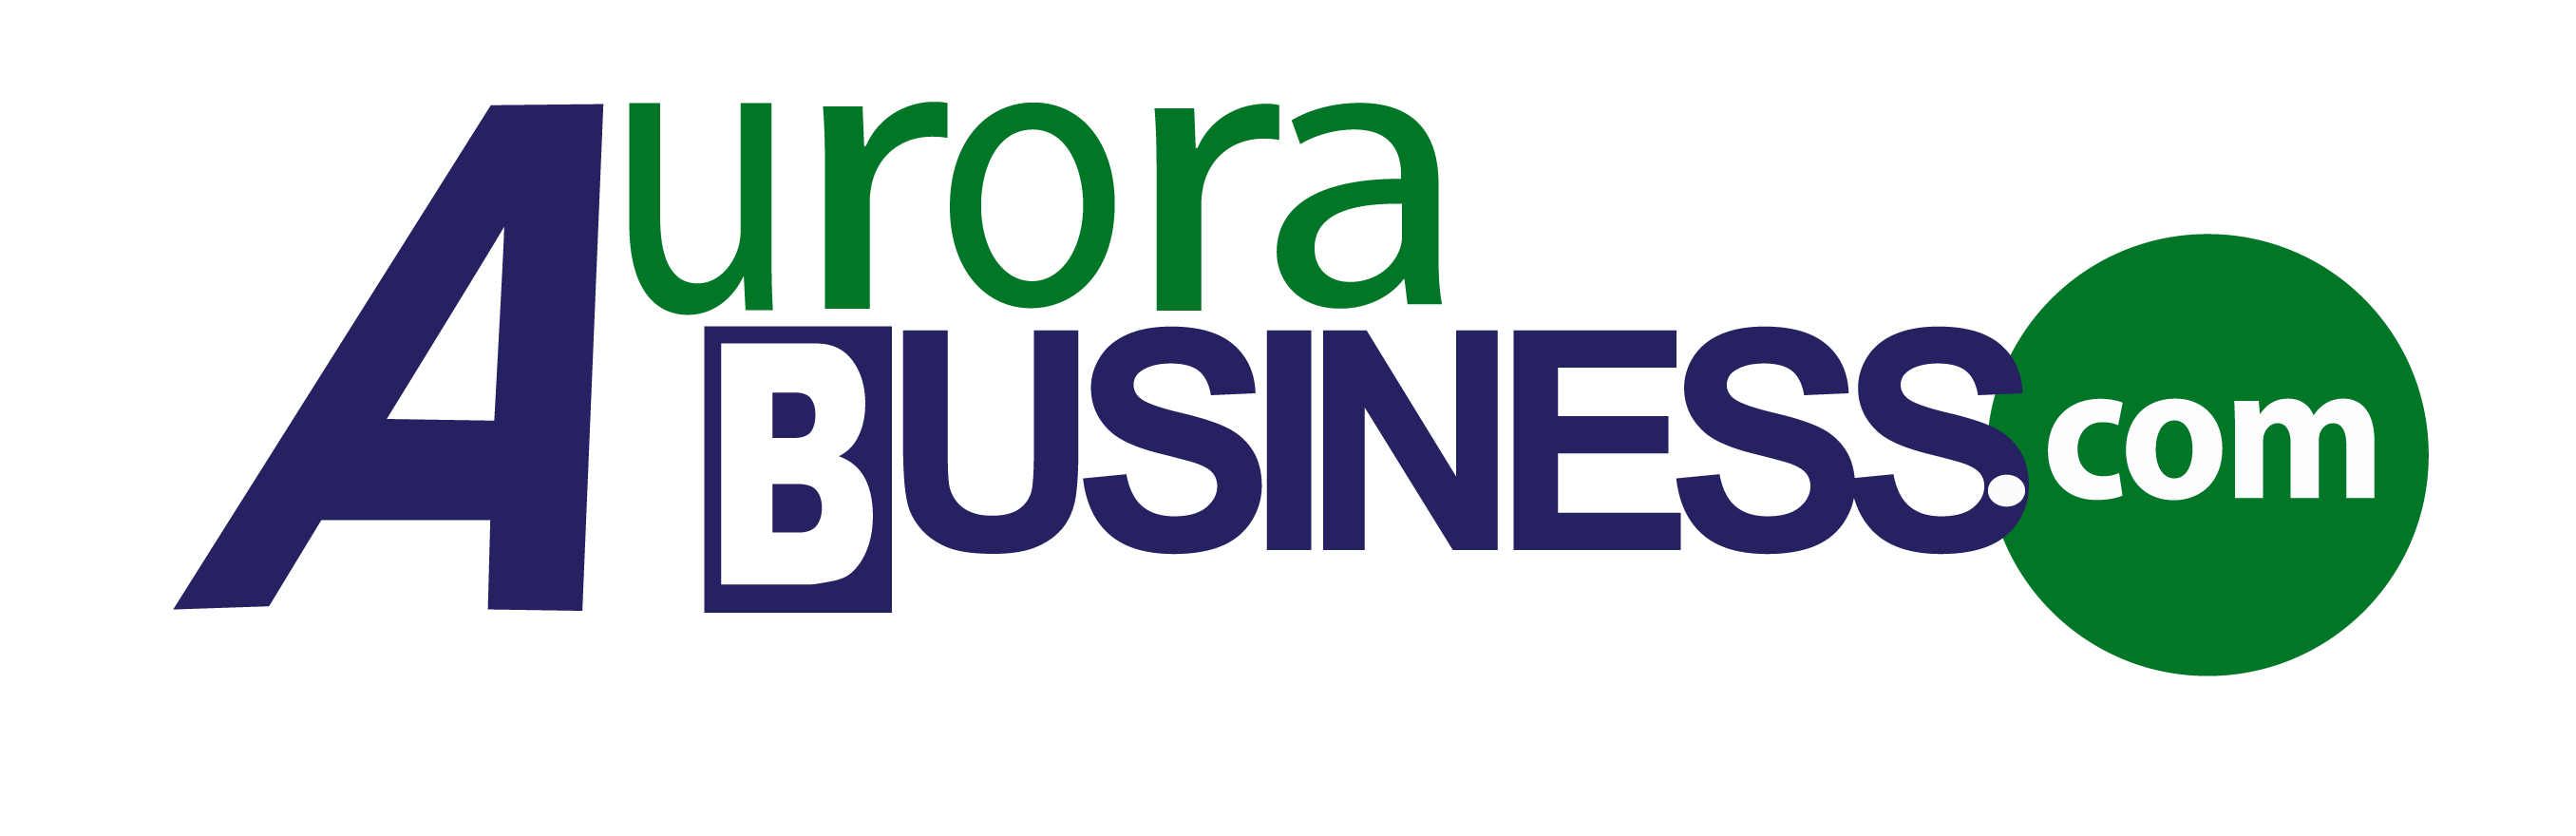 Aurora Business